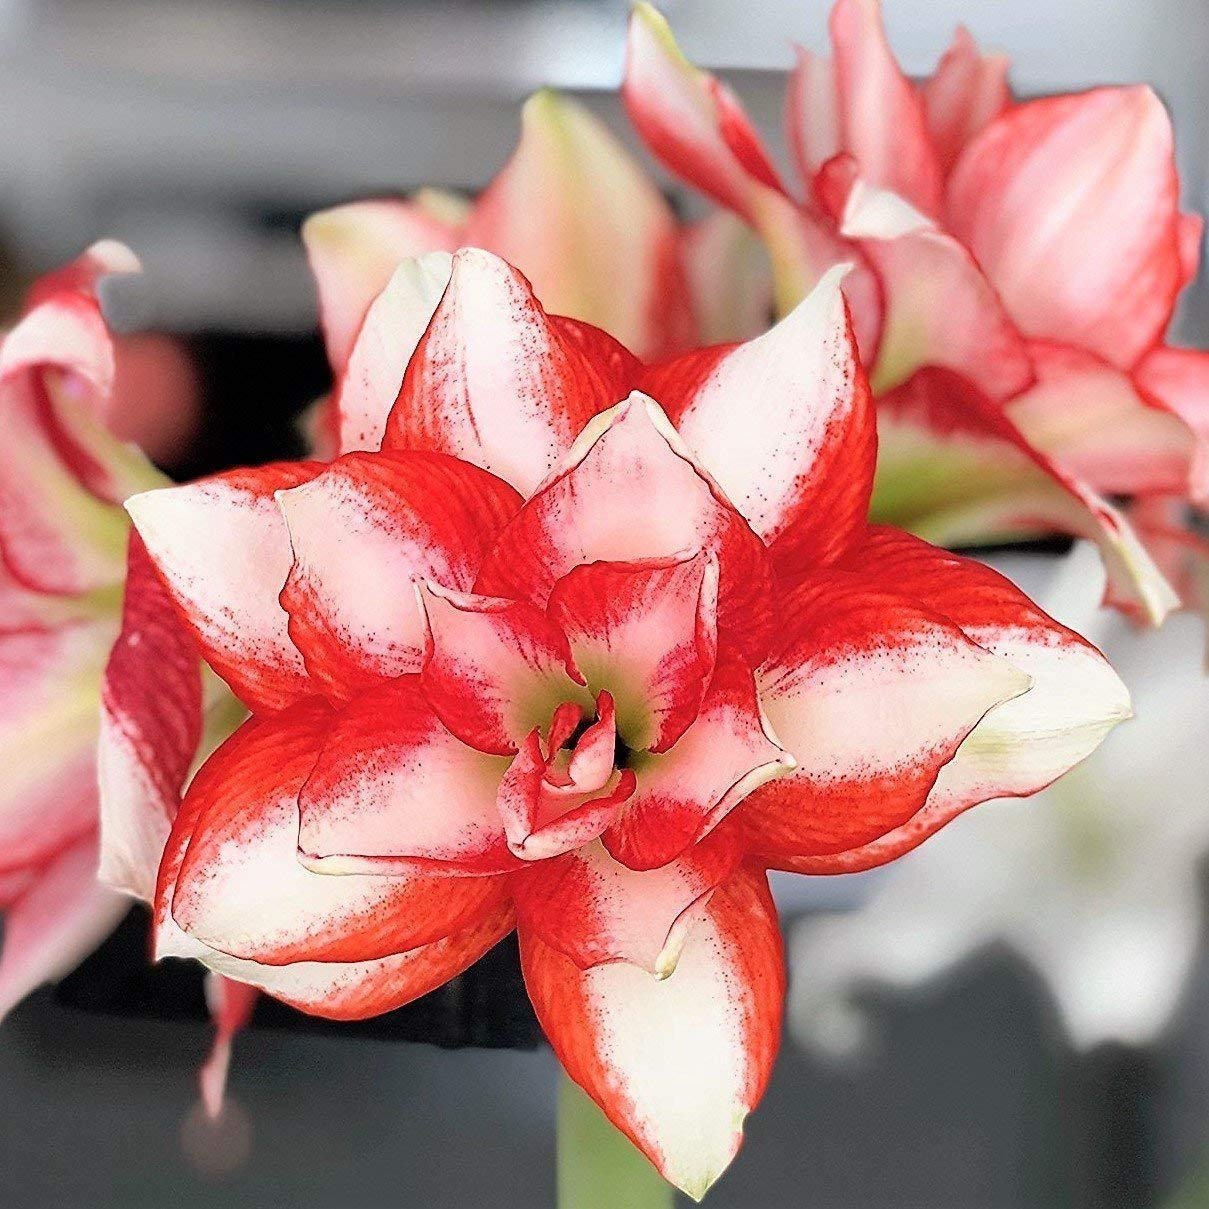 7d664a15944 Get Quotations · 1 Double Amaryllis Bulb Red and White Candy Cane Amaryllis Exotic  Peacock - 26 28cm